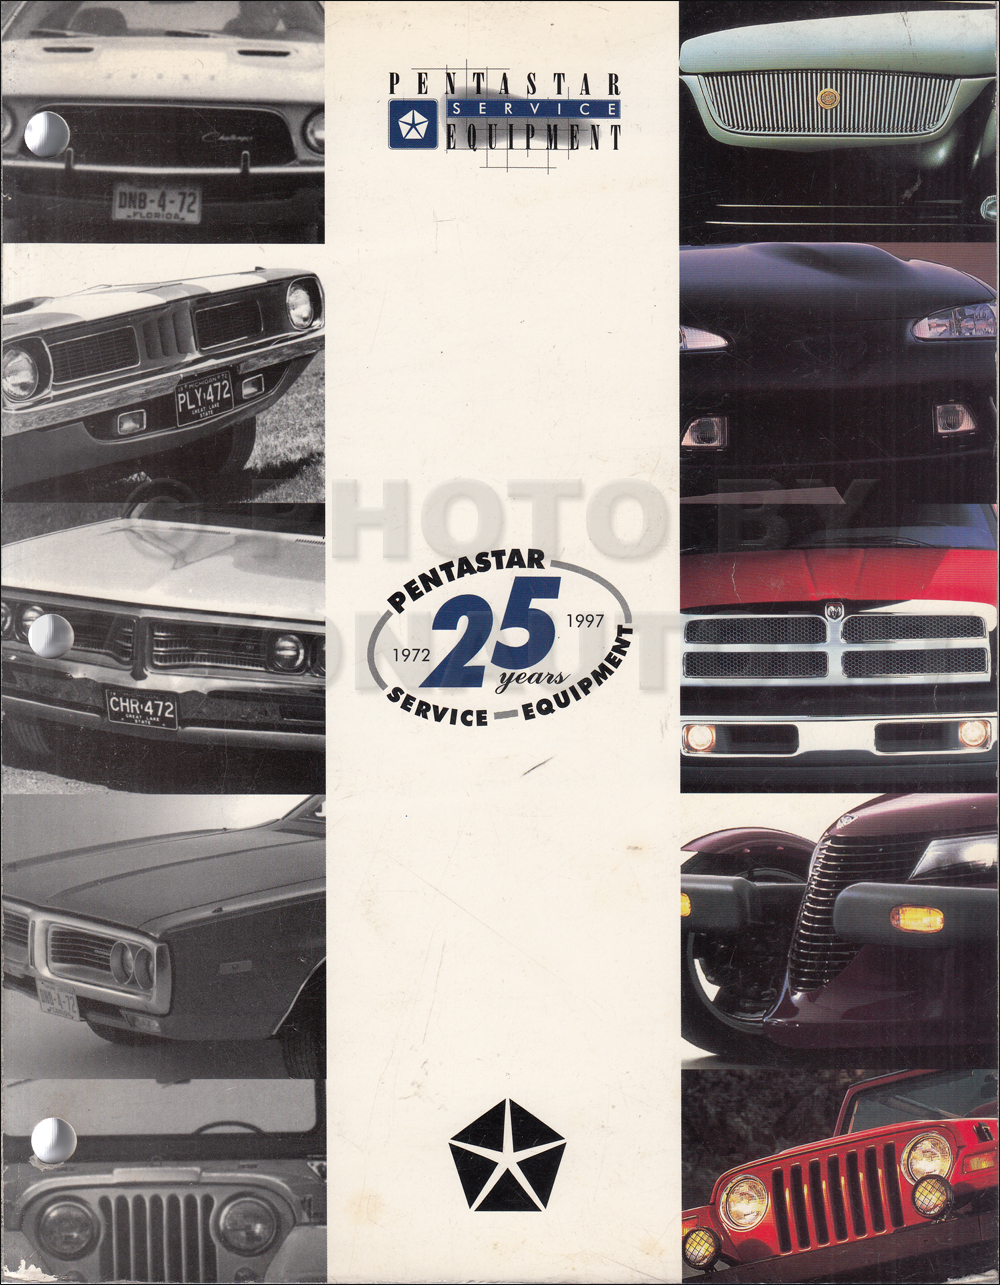 1997-1998 Mopar Service Equipment Catalog Original